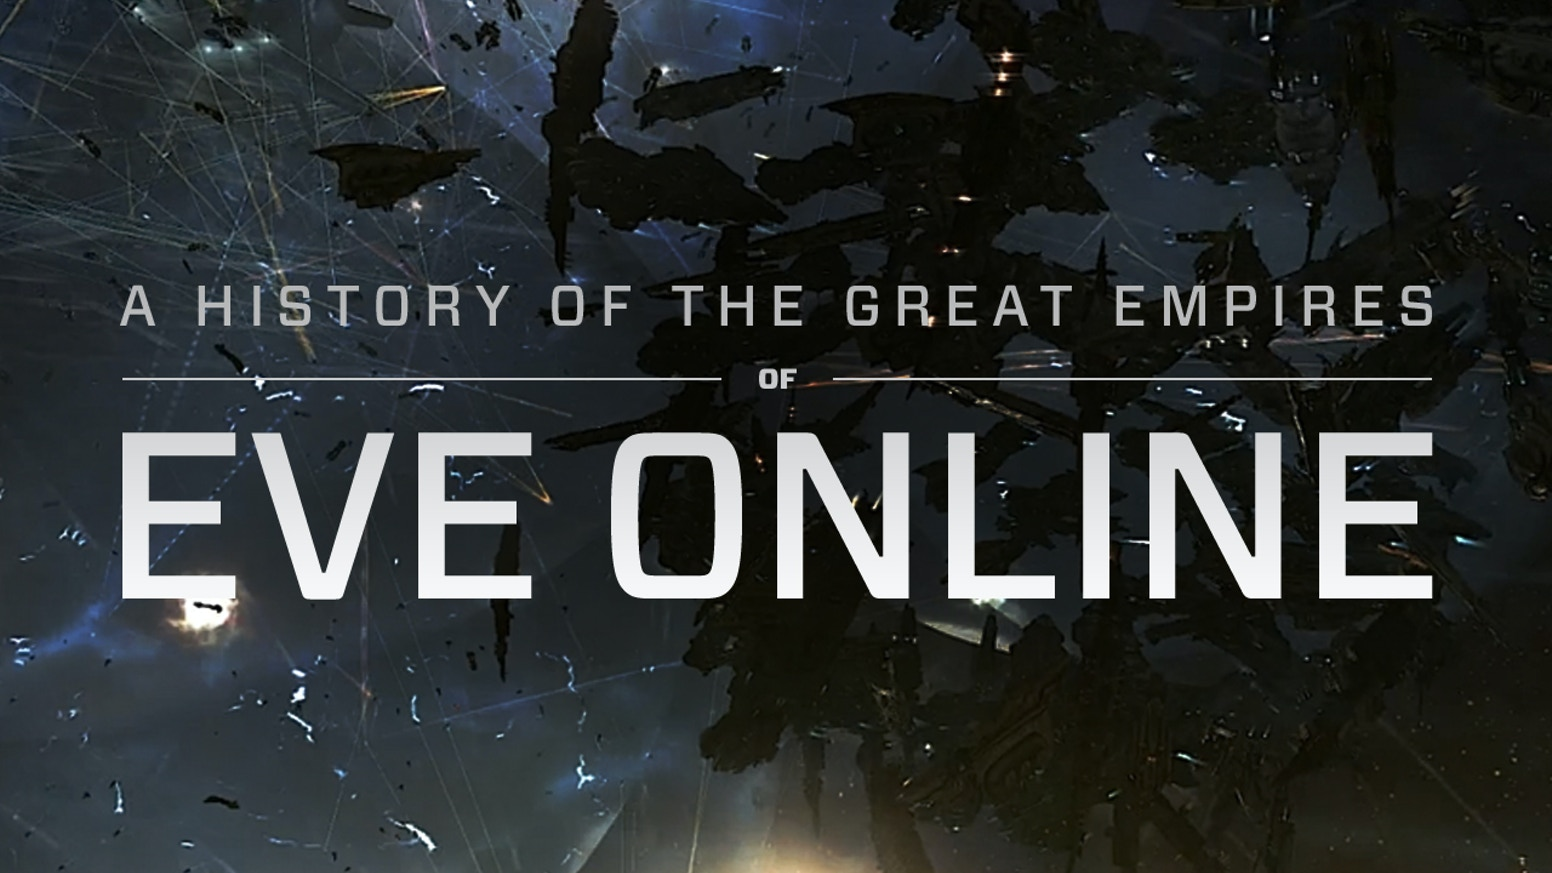 A History of the Great Empires of Eve Online by Andrew Groen